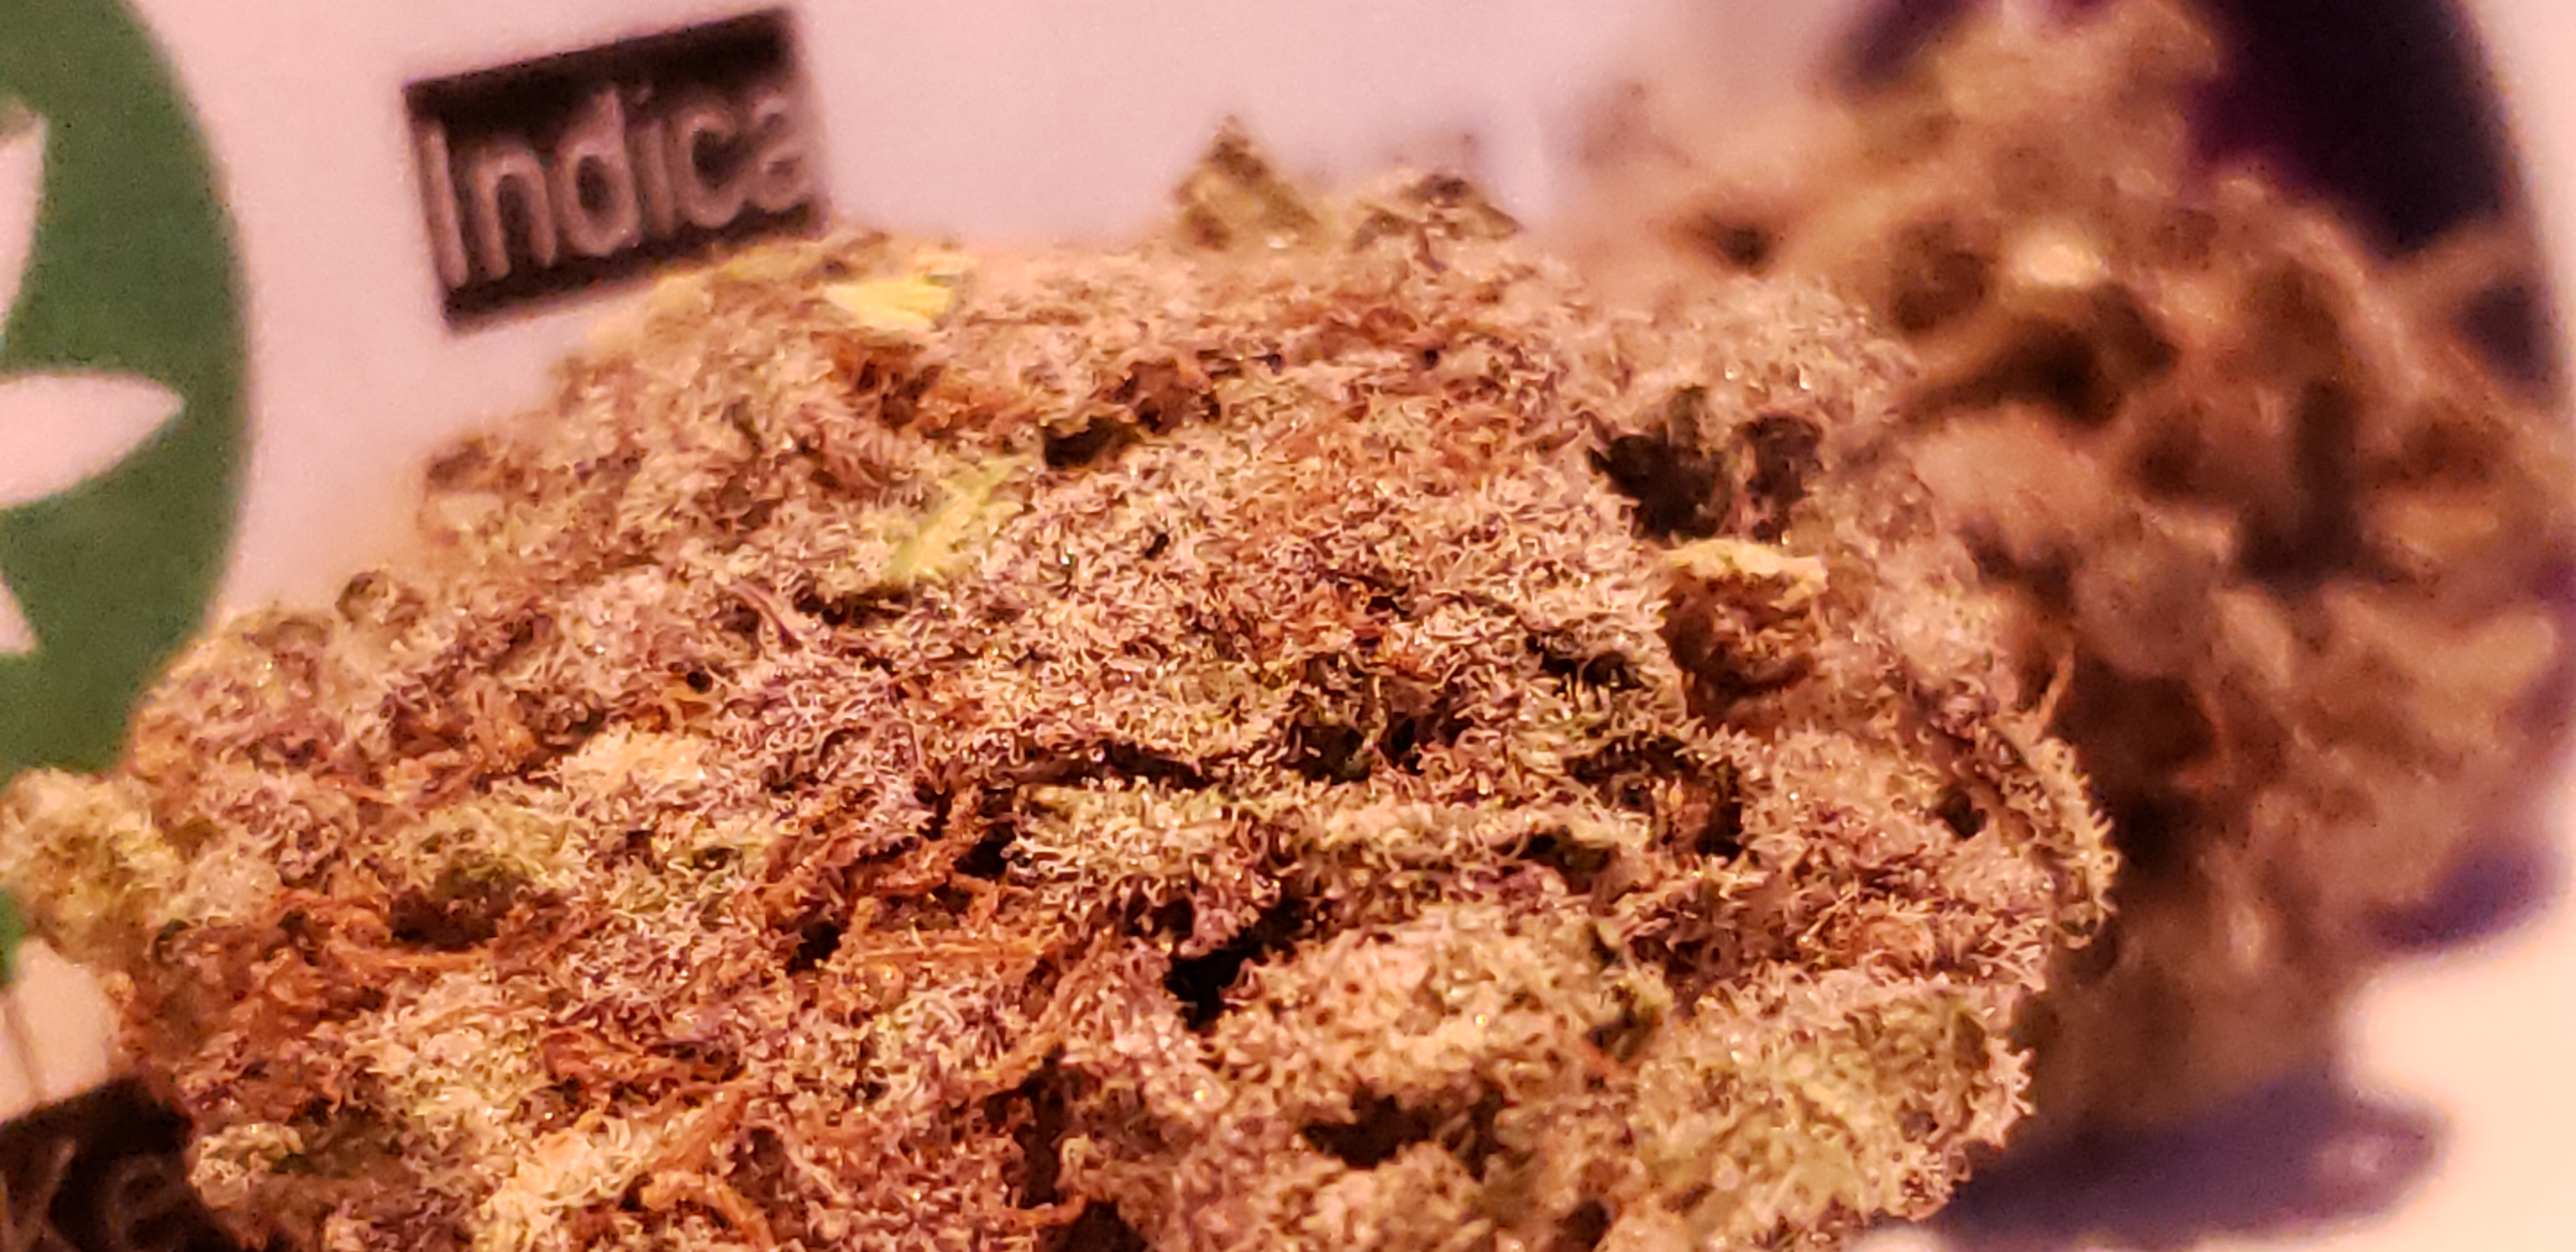 Chronic Post's Greasy Pink